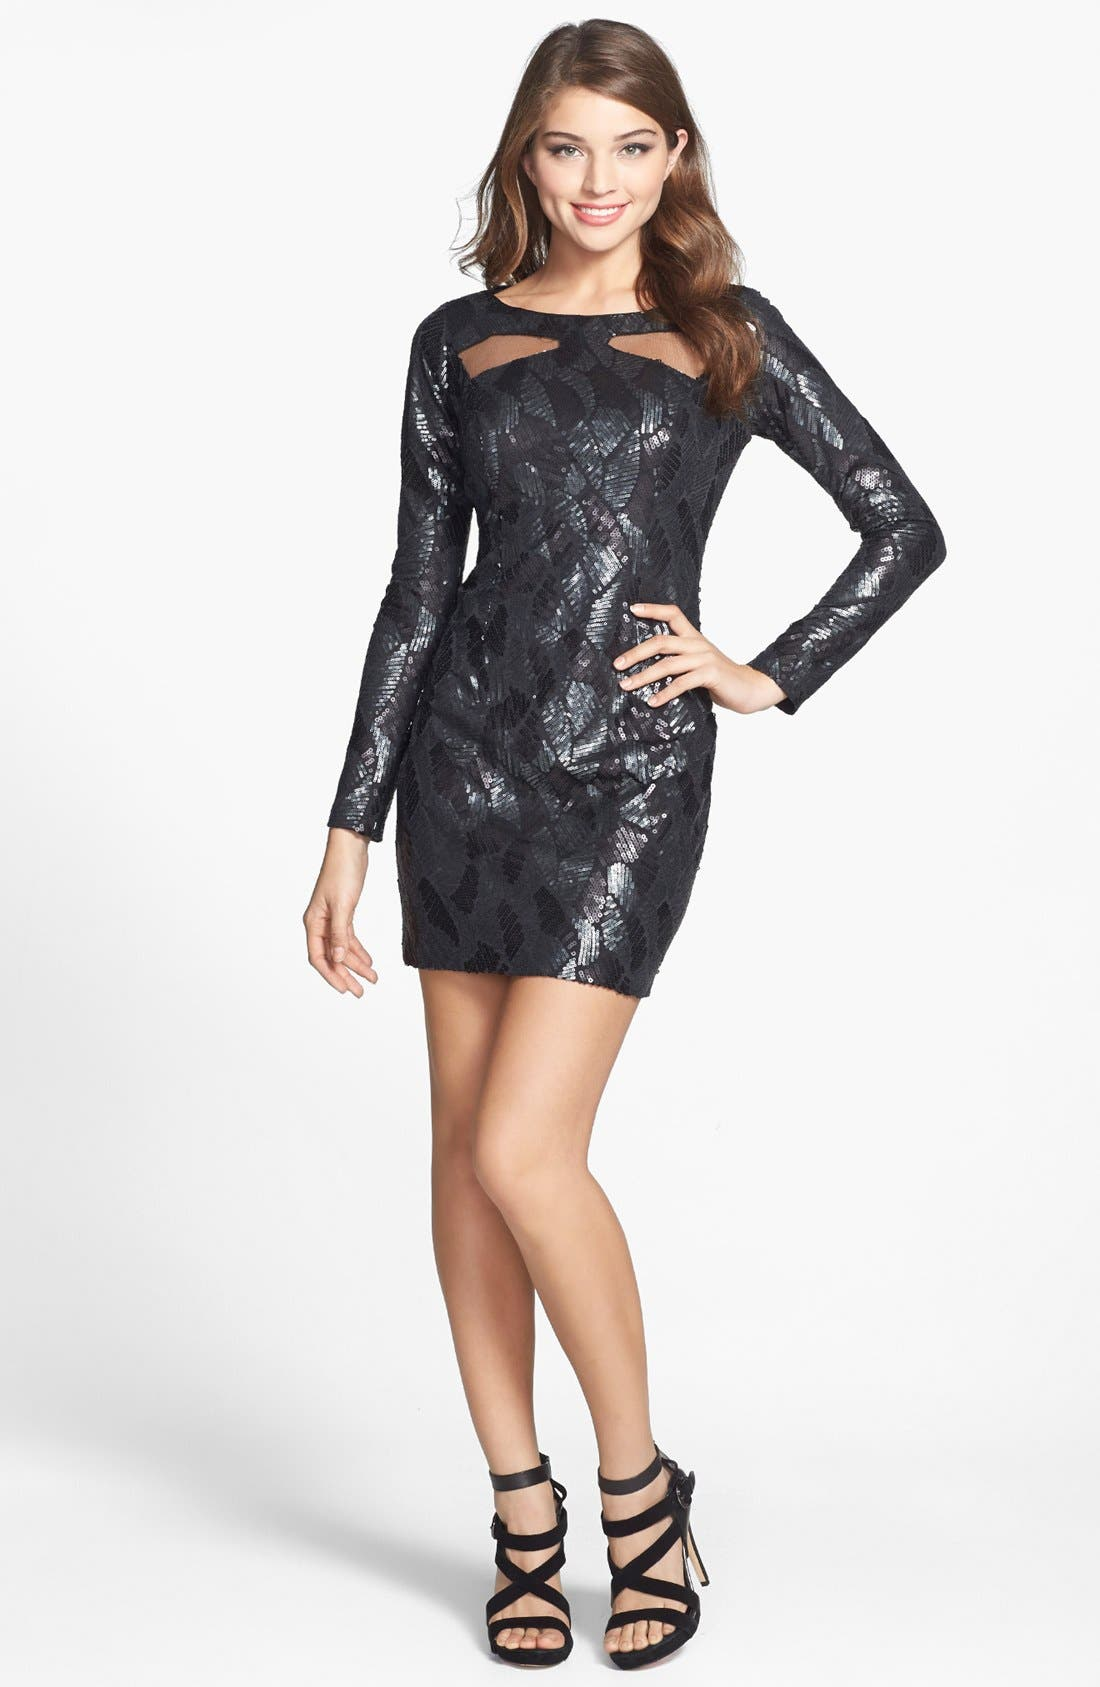 Main Image - Hailey by Adrianna Papell Sequin Pattern Illusion Cutout Jersey Dress